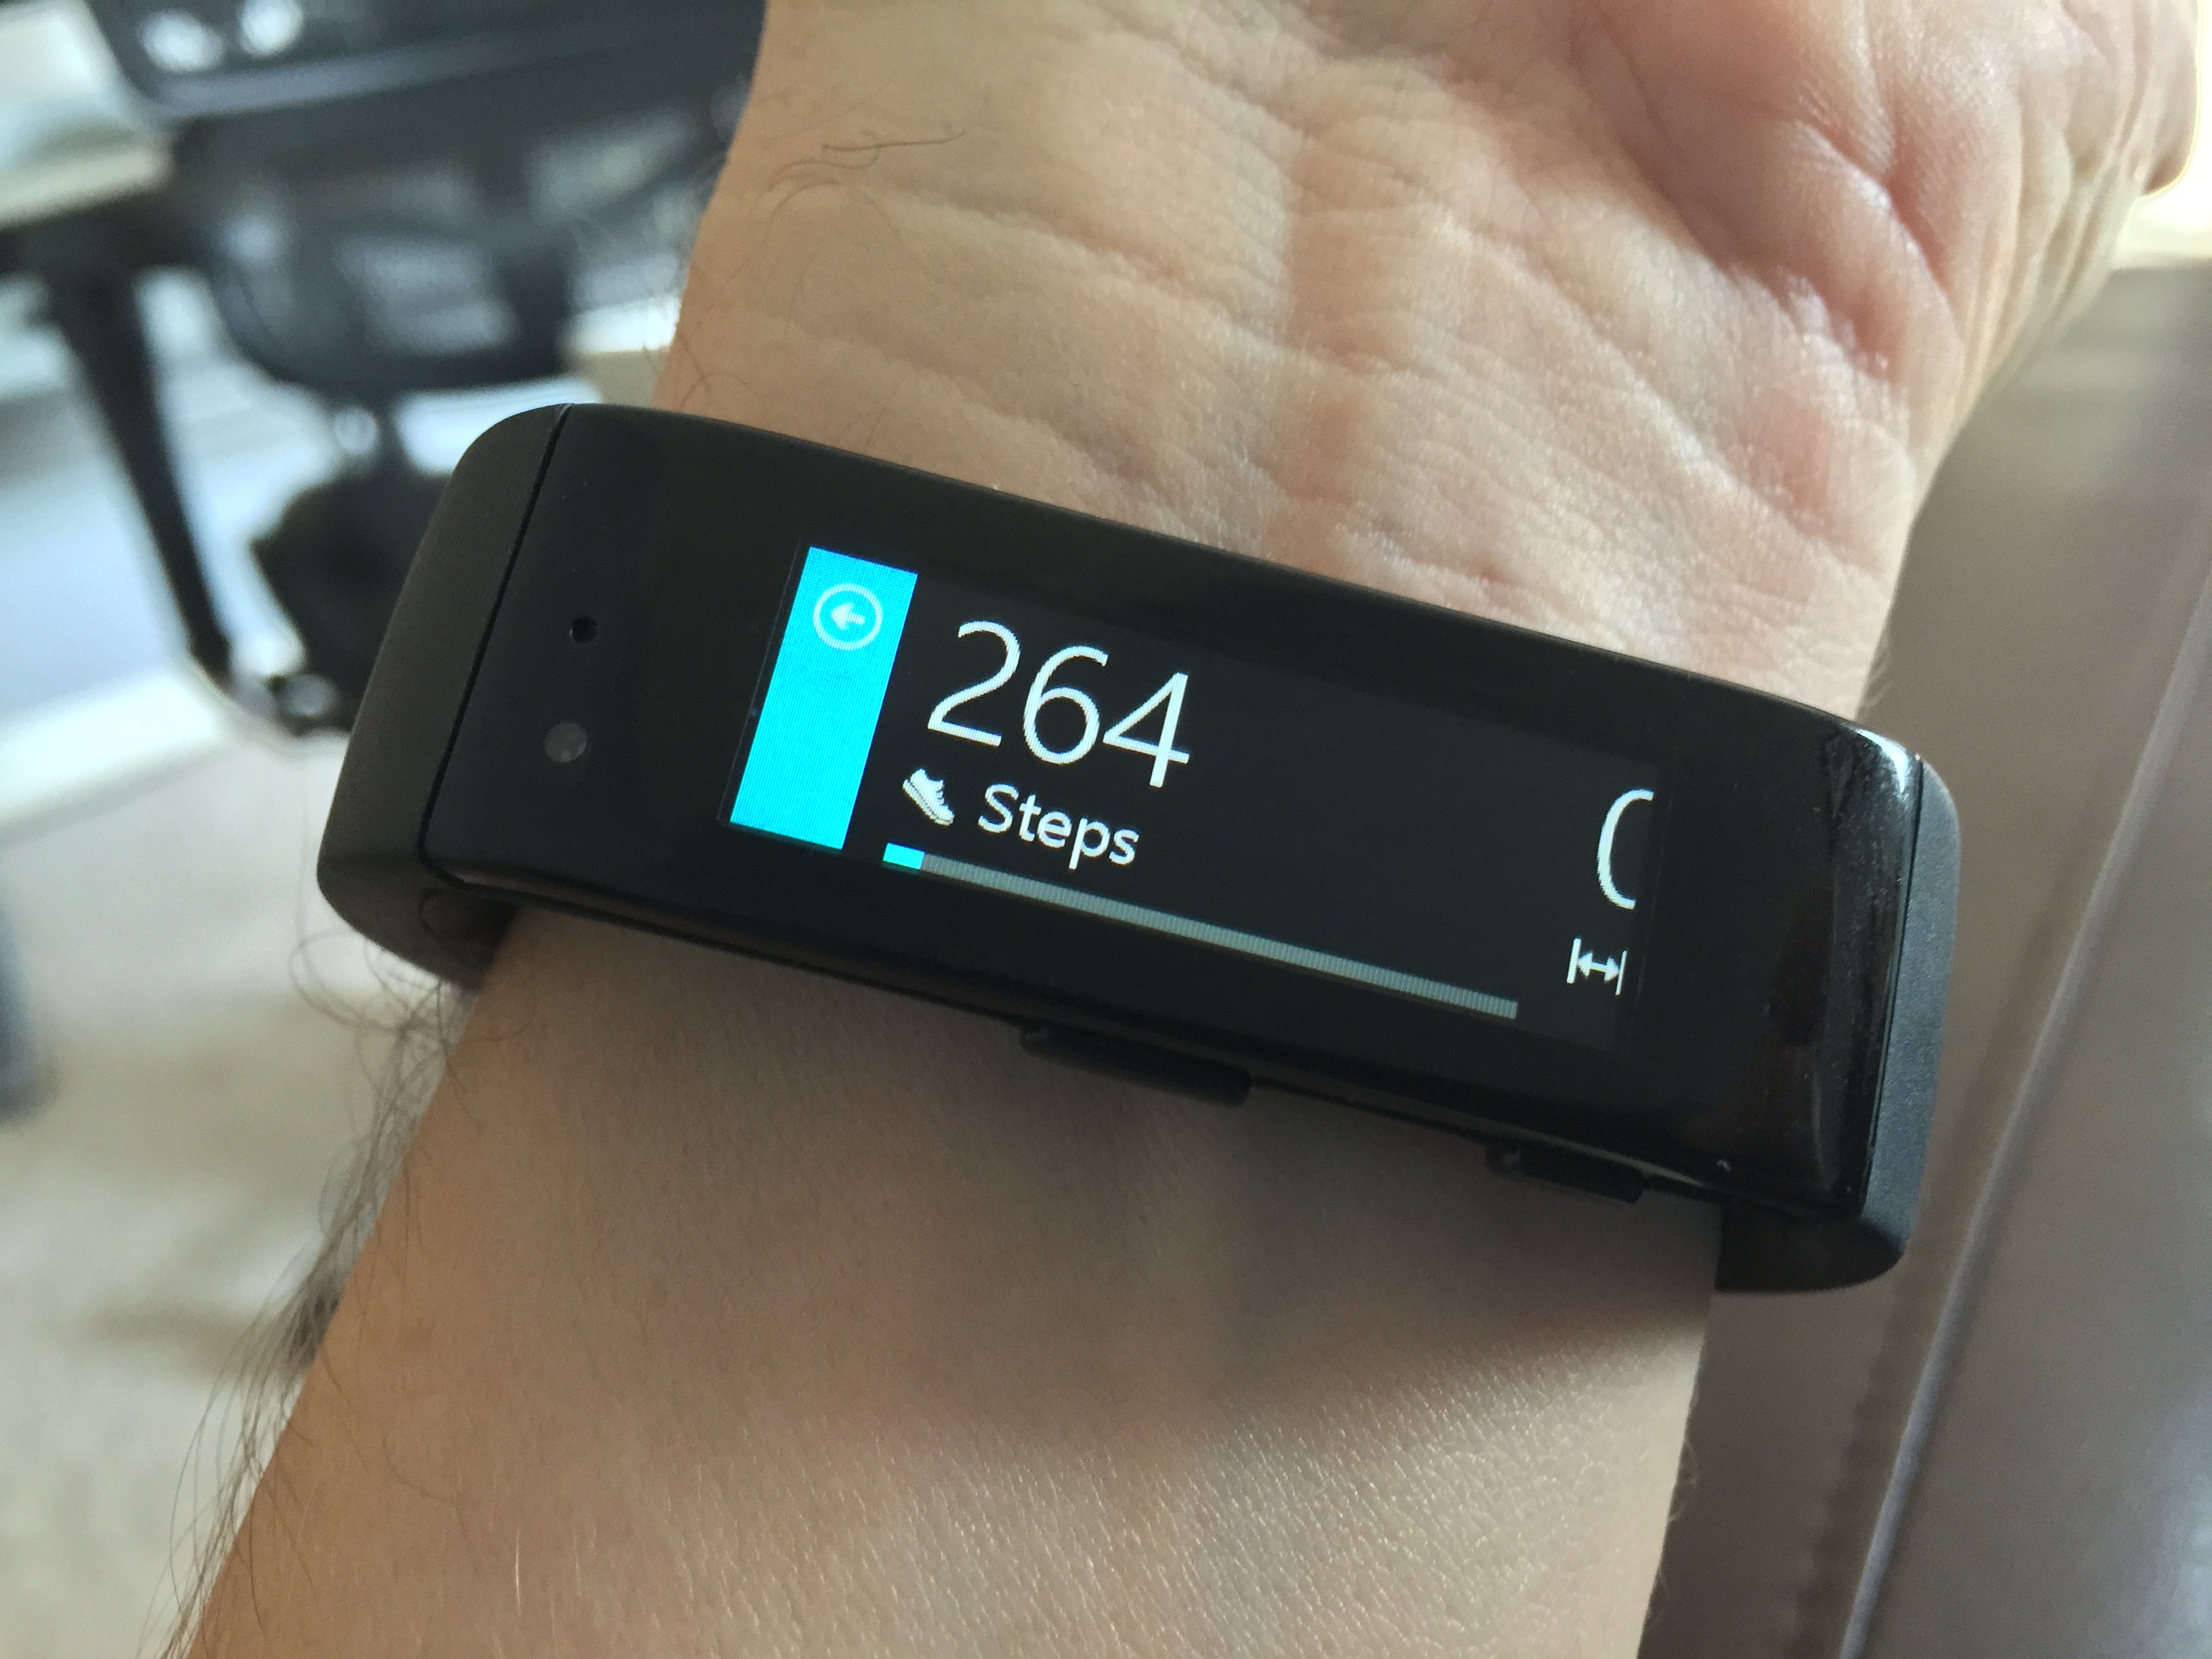 Microsoft Band steps